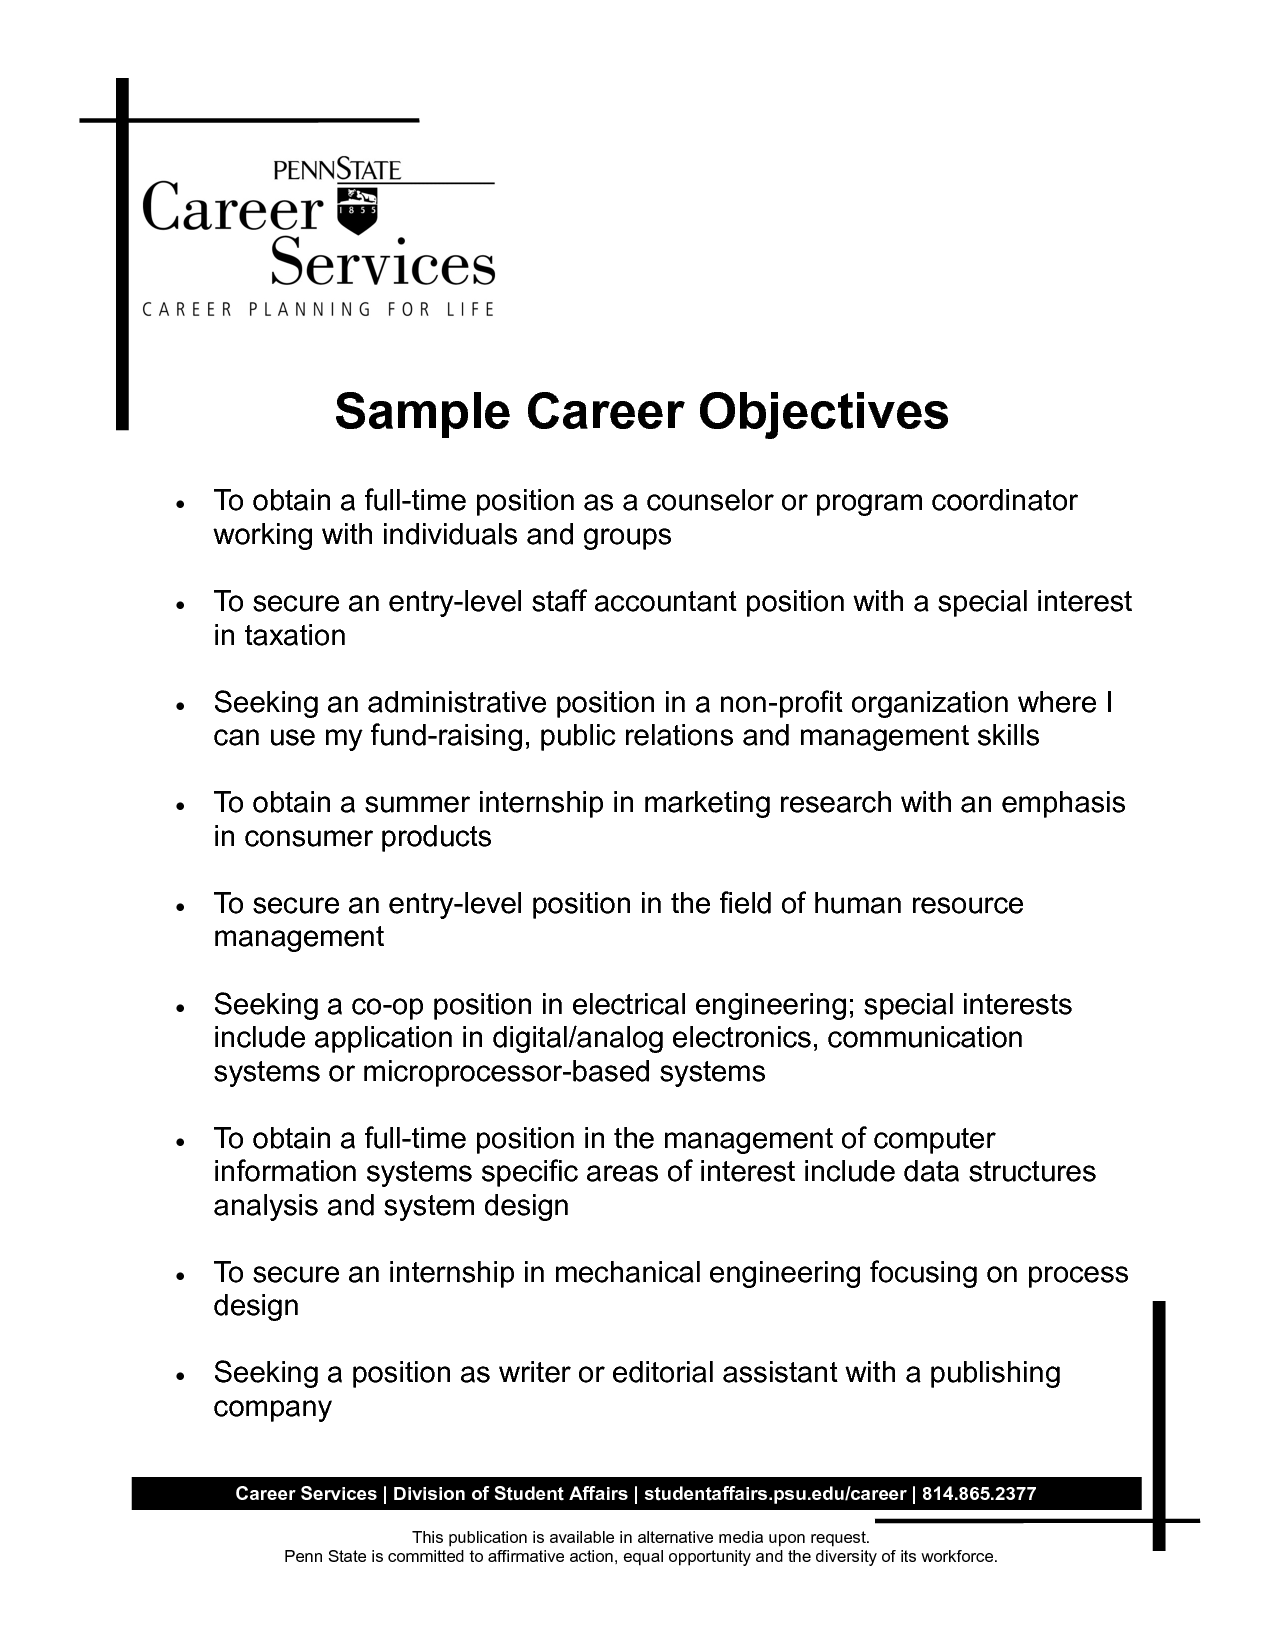 how to write resume objective How to write a career change resume objective that makes the right impact convince the employer to give your application serious consideration a career change resume objective should highlight your transferable skills and competencies as they relate directly to the new job opportunity.